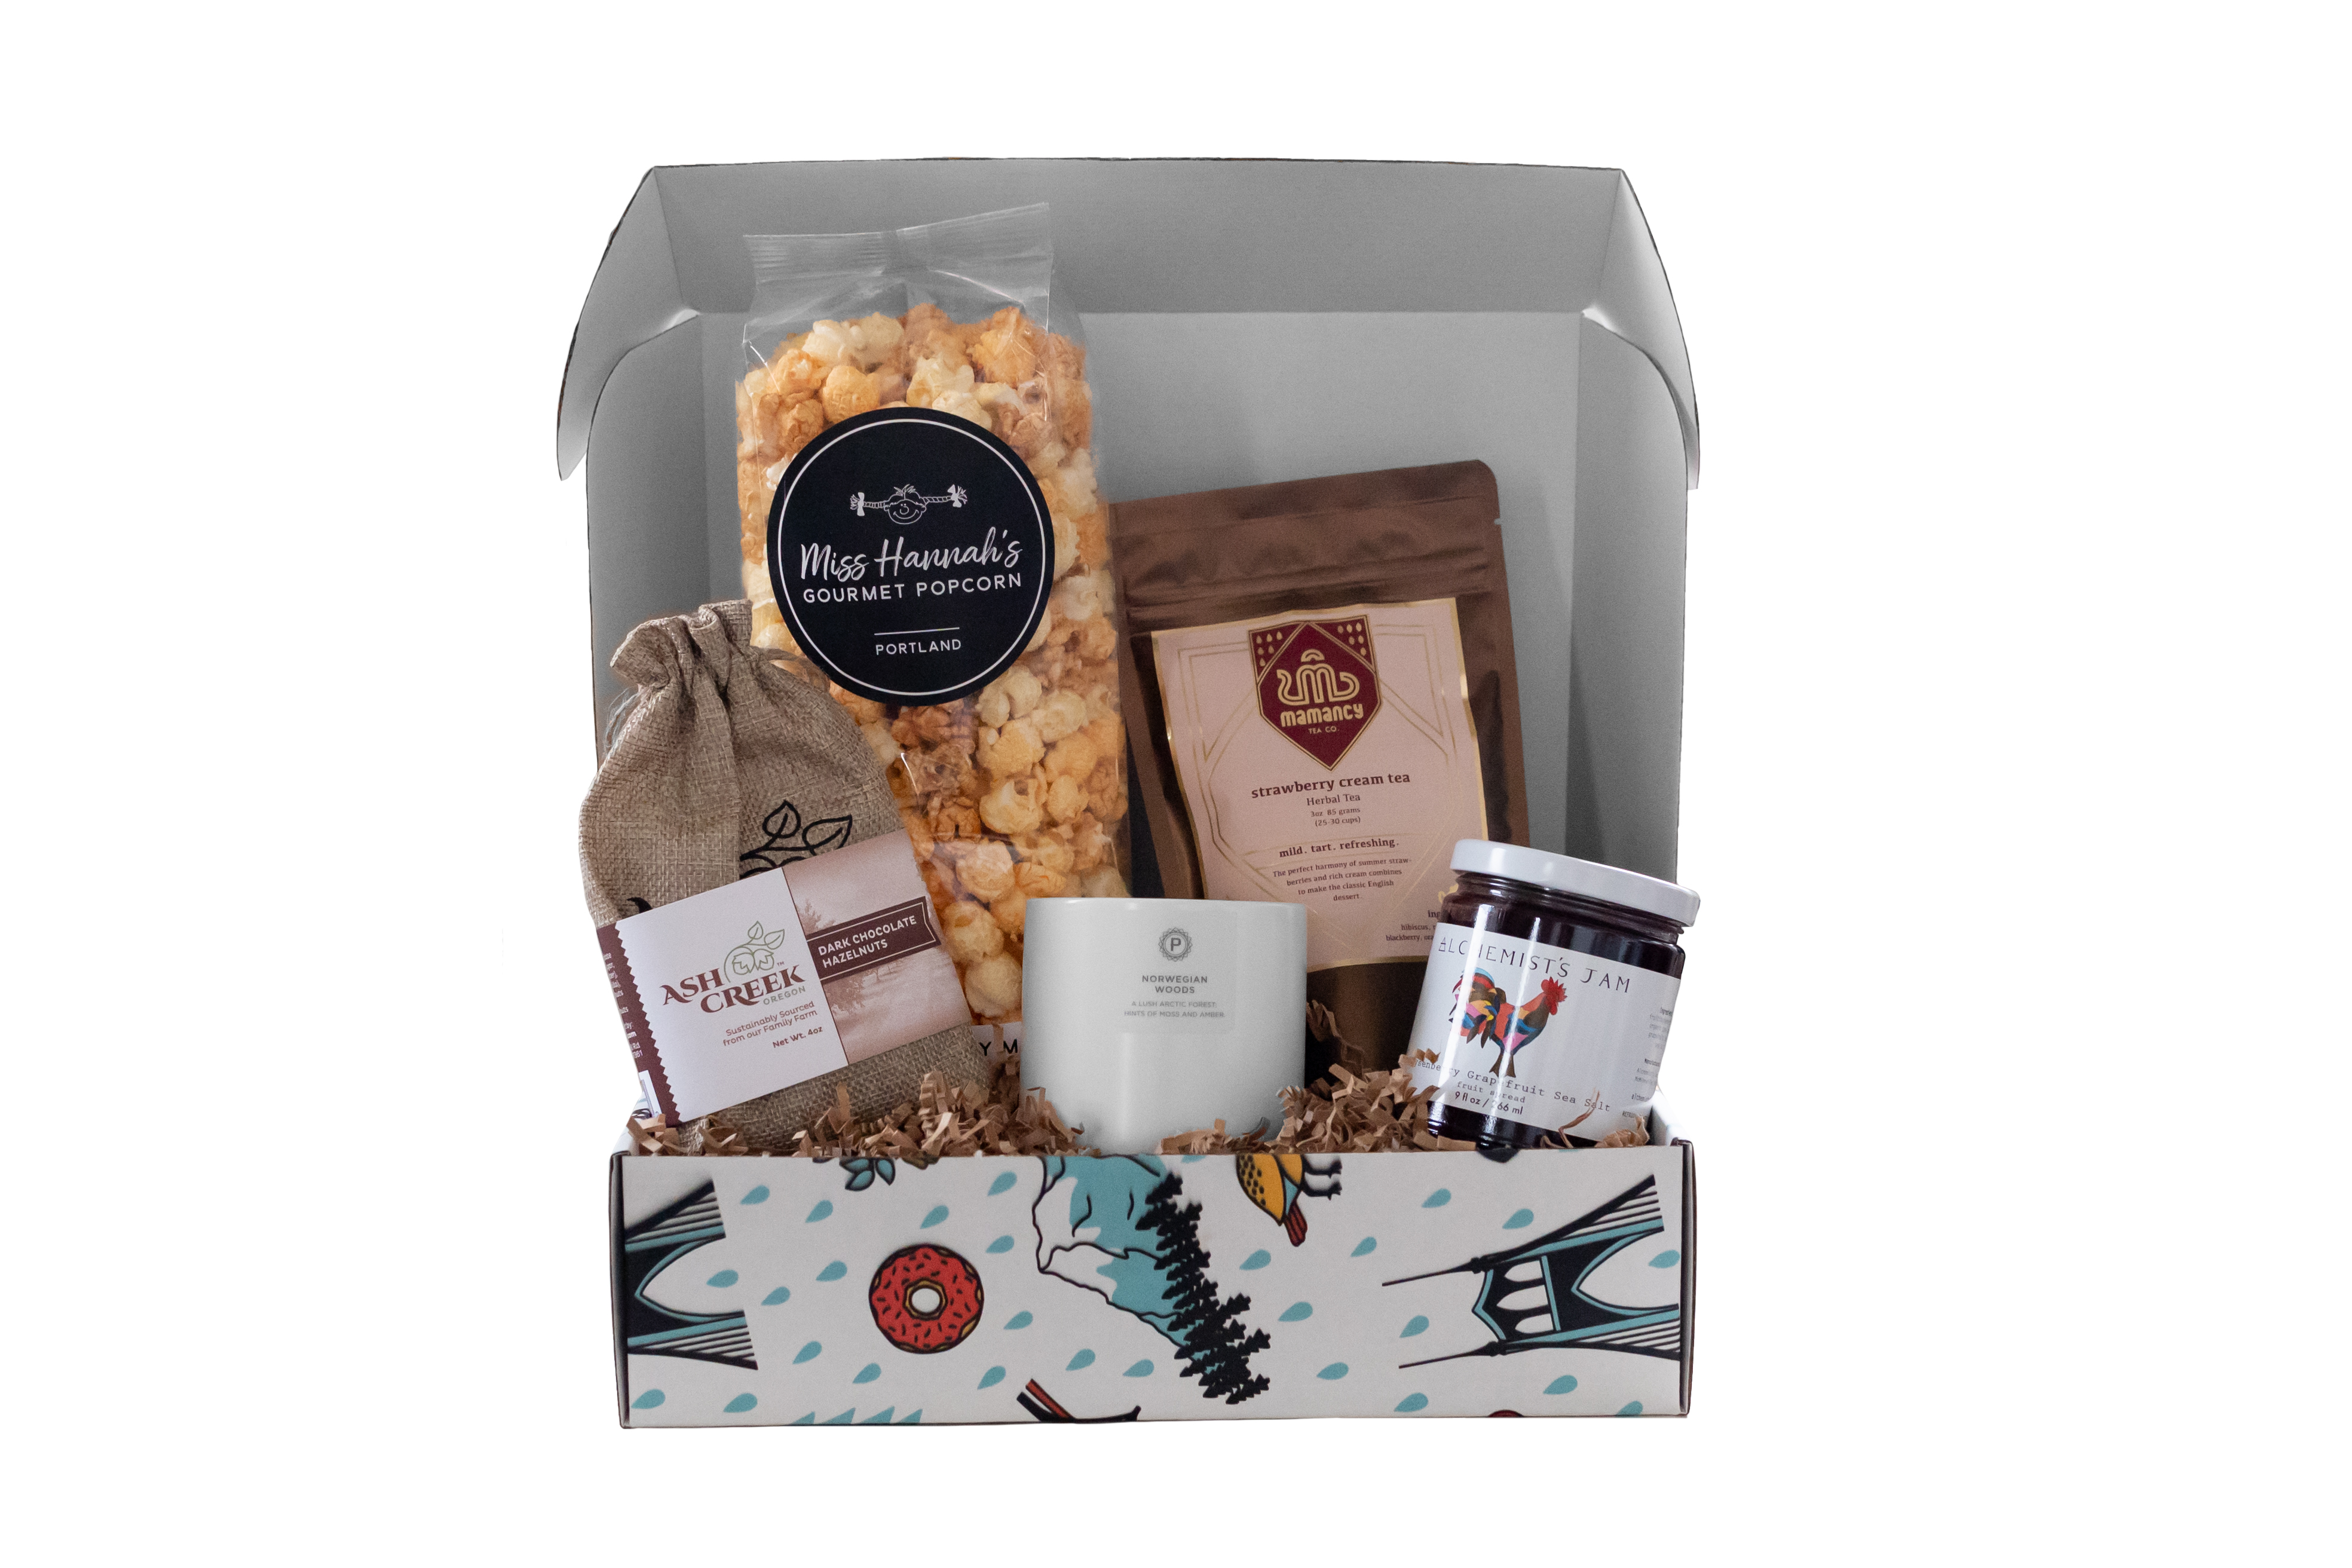 Women's Month box with candle, popcorn, jam. Ecommerce photography